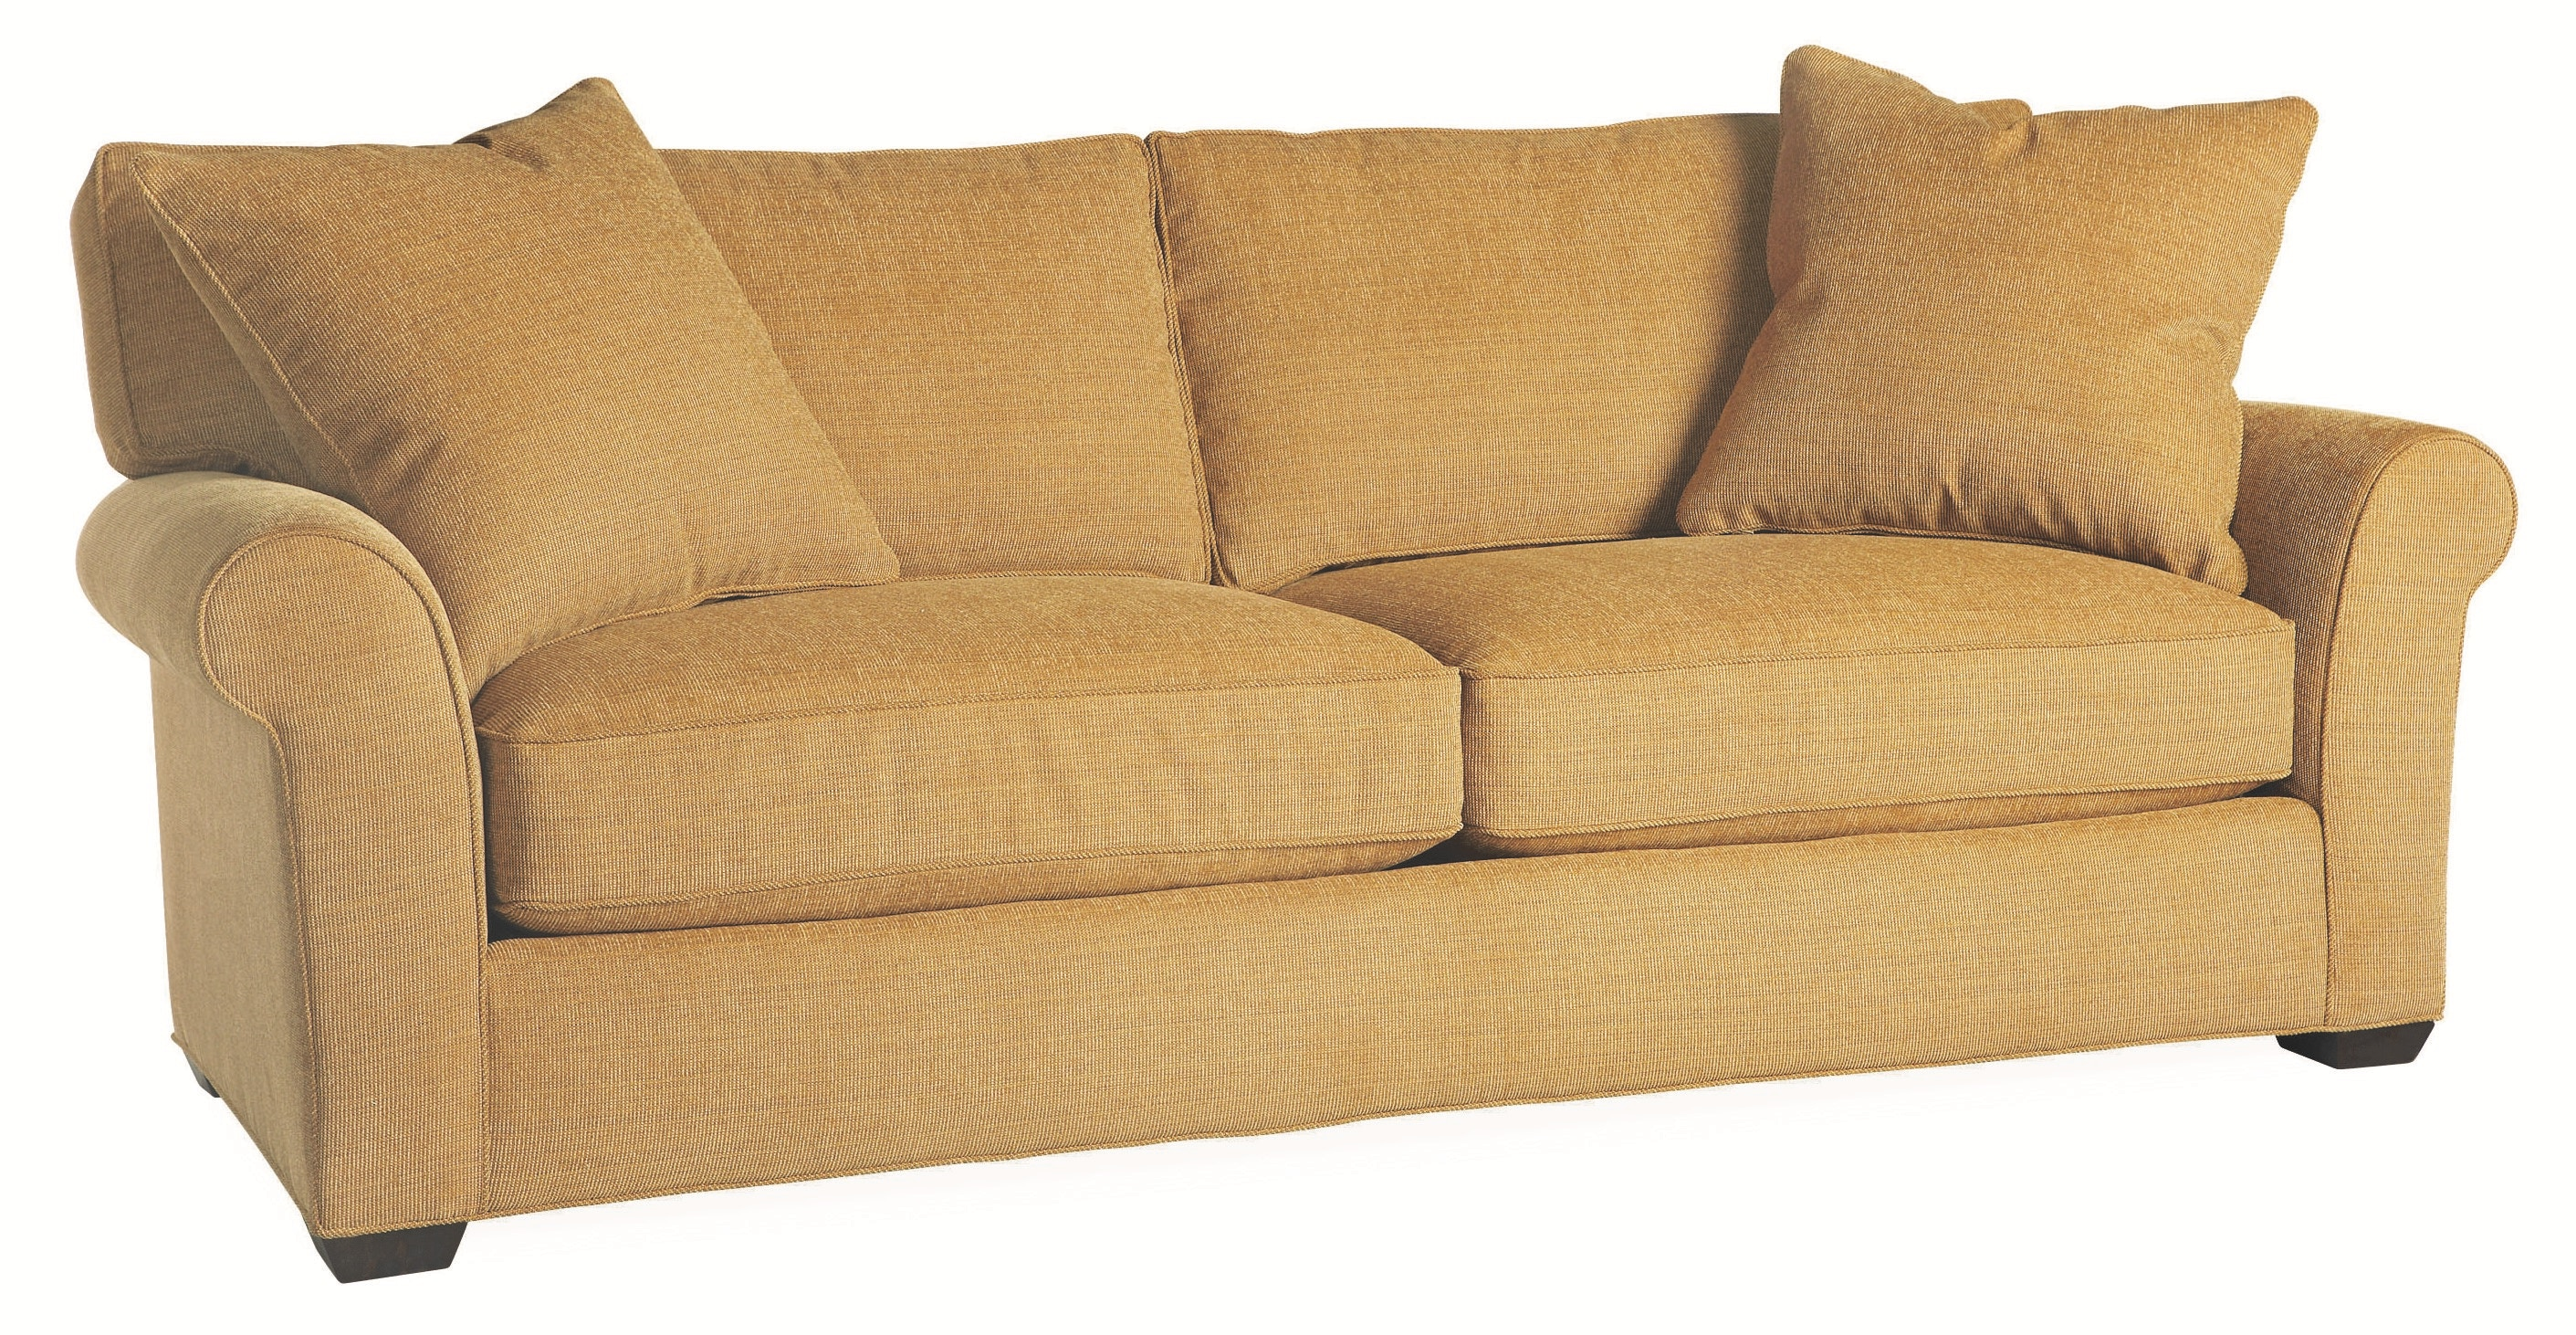 Lee Industries Sofa 7117 03